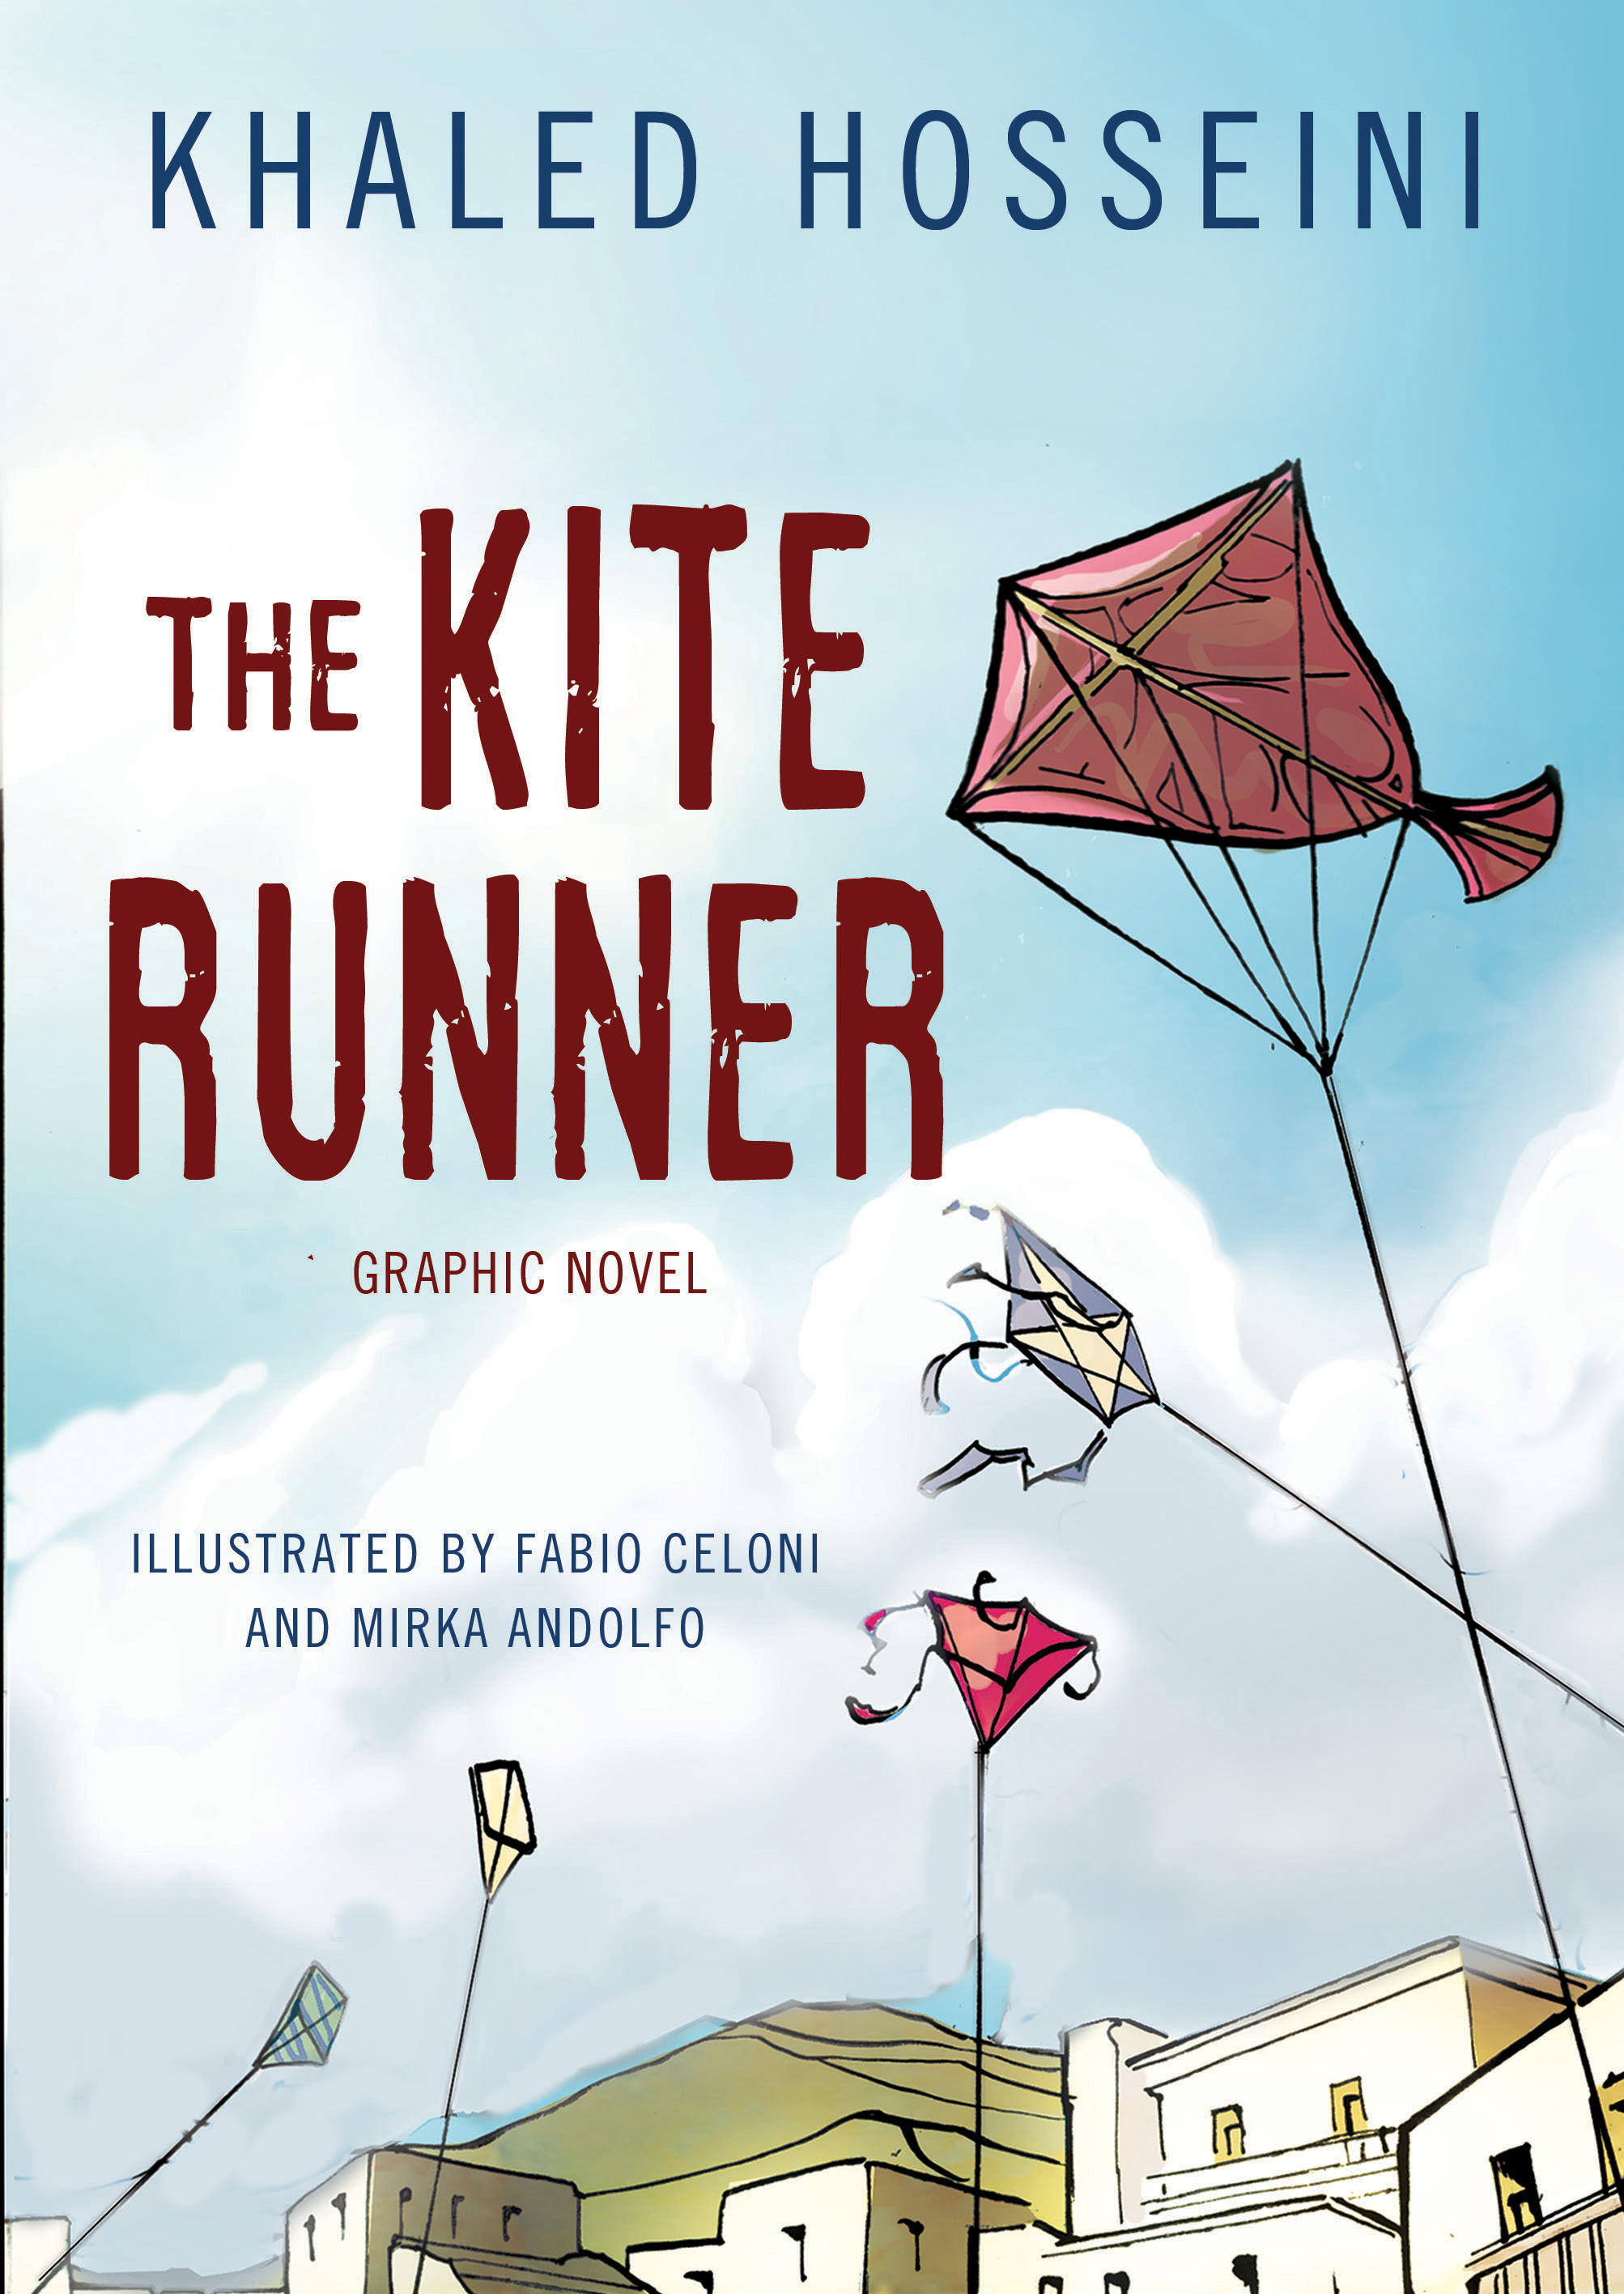 religion in the kite runner major motion picture first christian  the kite runner graphic novel khaled hosseini fabio celoni cover